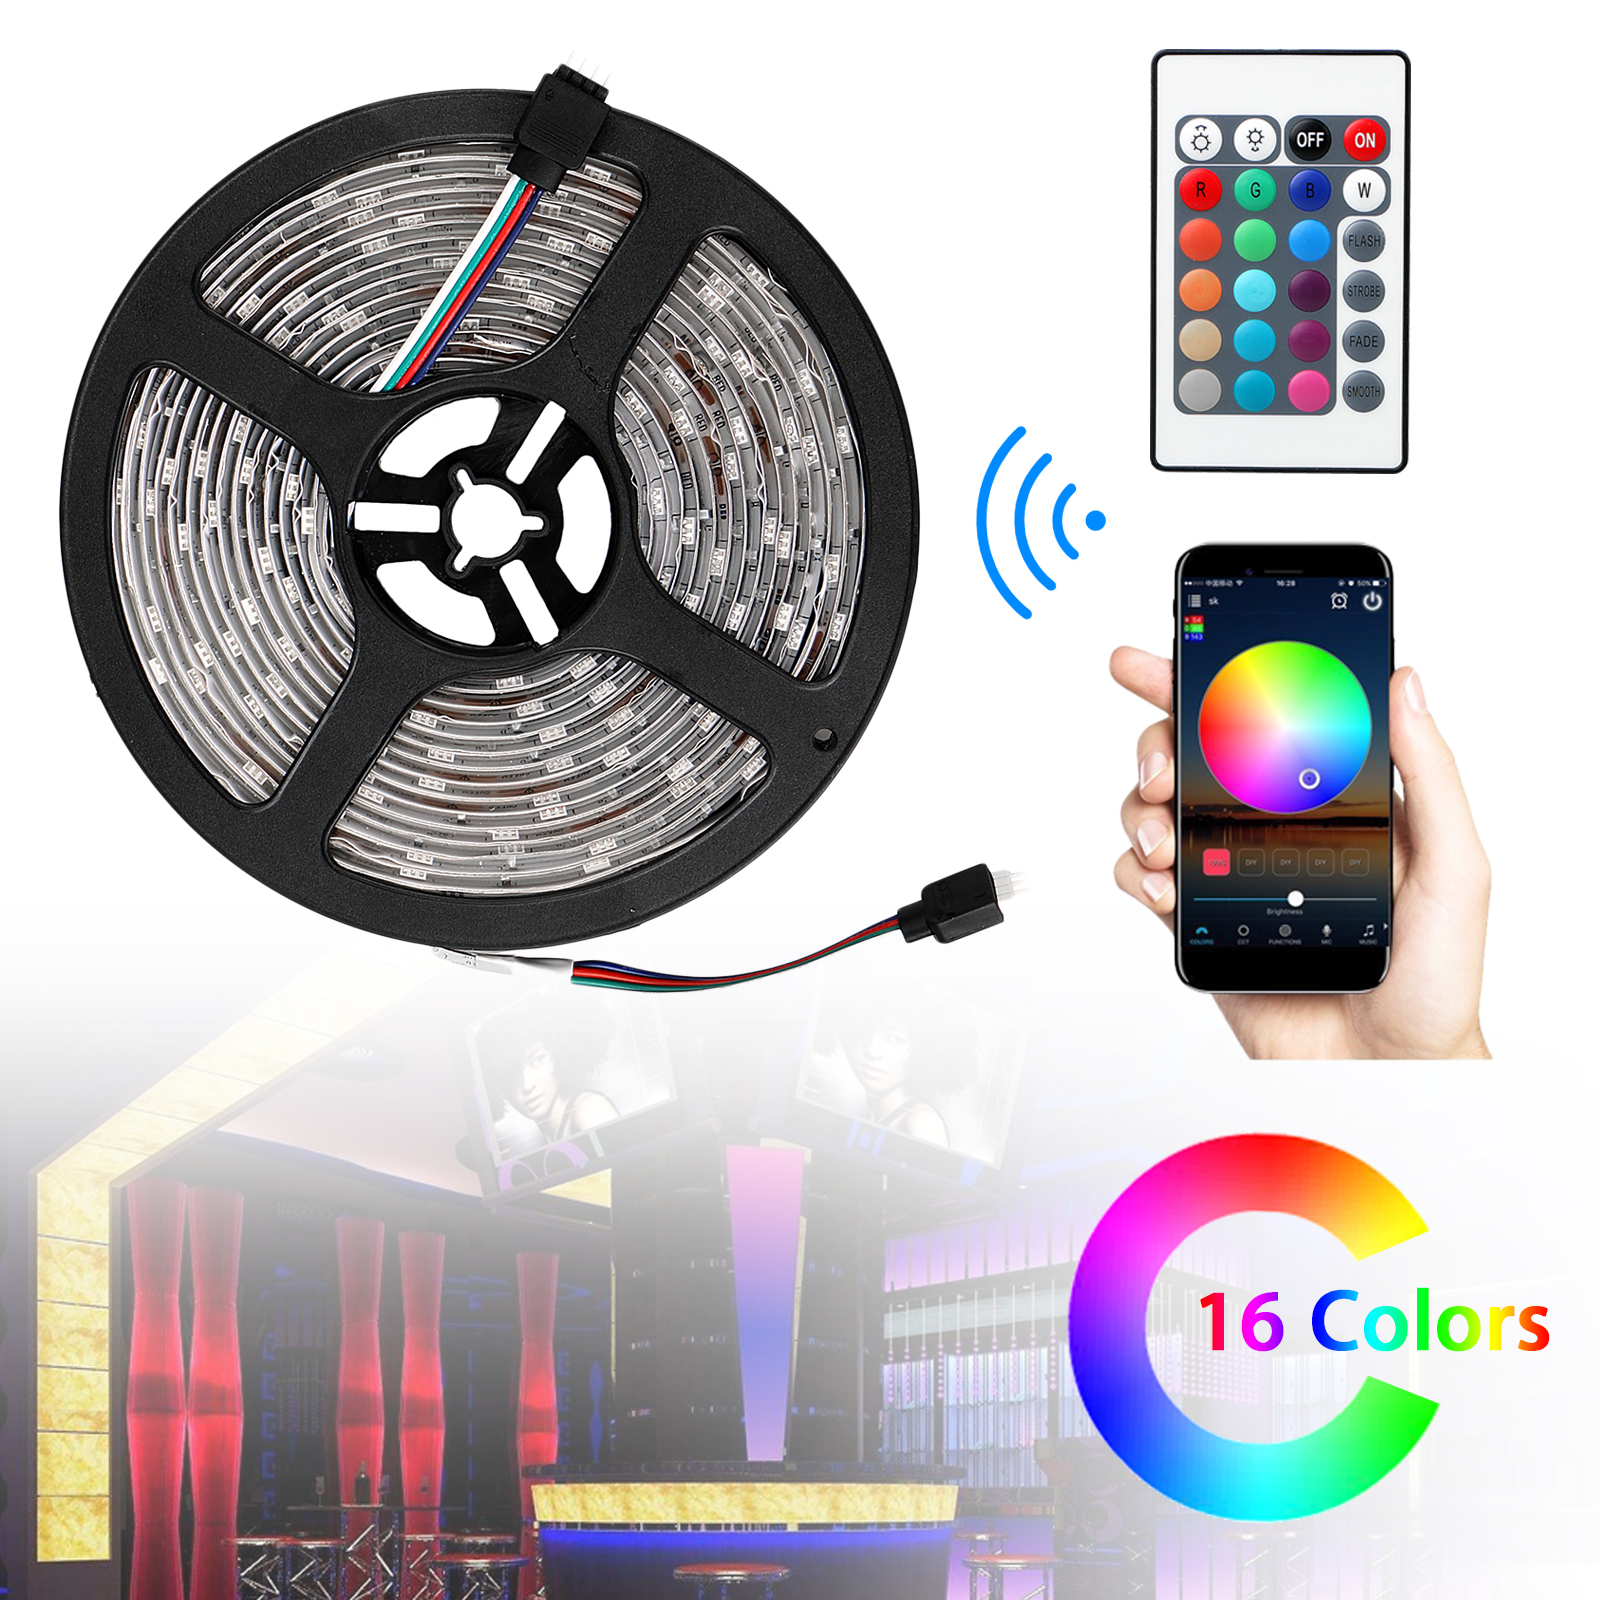 EEEKit Wifi Wireless Smart Phone Controlled Led Strip Light Kit Waterproof SMD 5050 16.4Ft(5M) 150leds RGB Tape Timer Work with Android IOS Google Home